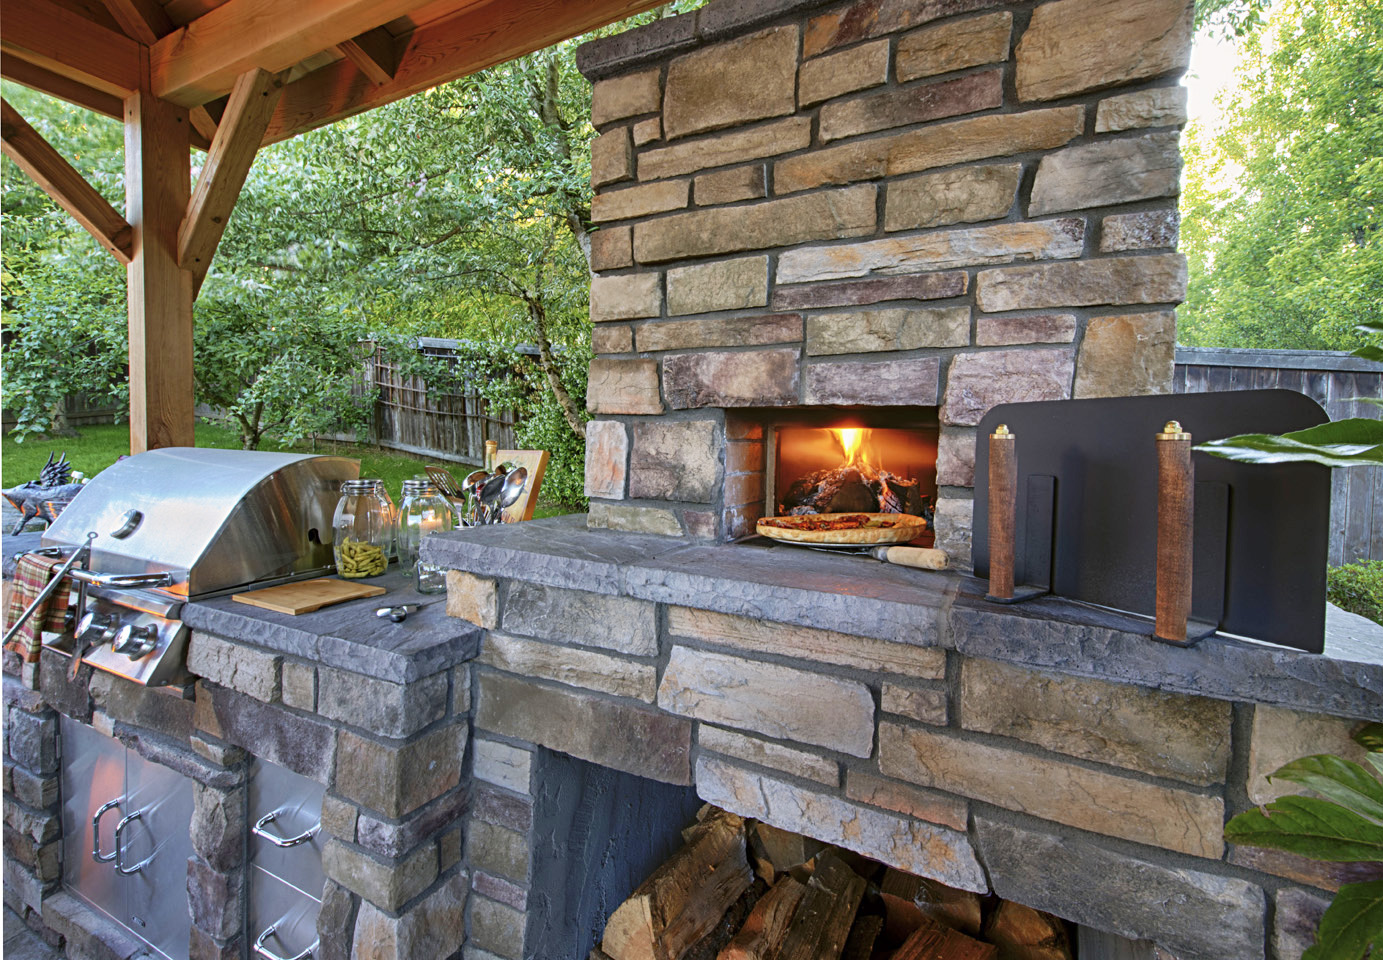 grill & pizza oven